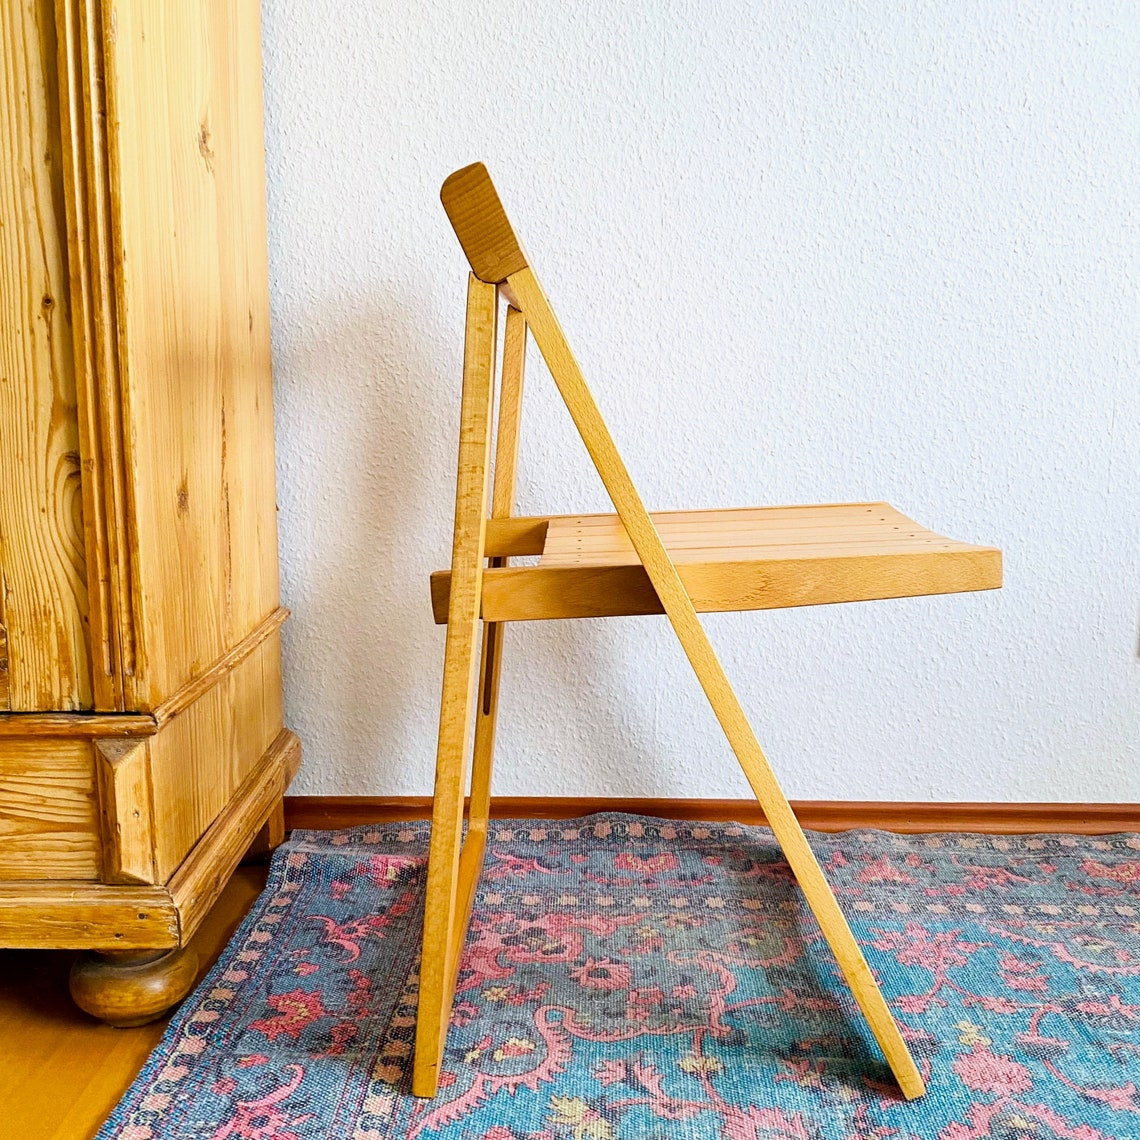 Folding Chair by Aldo Jacober for Alberto Bazzini, 60s, Chair, Mid Century Interior